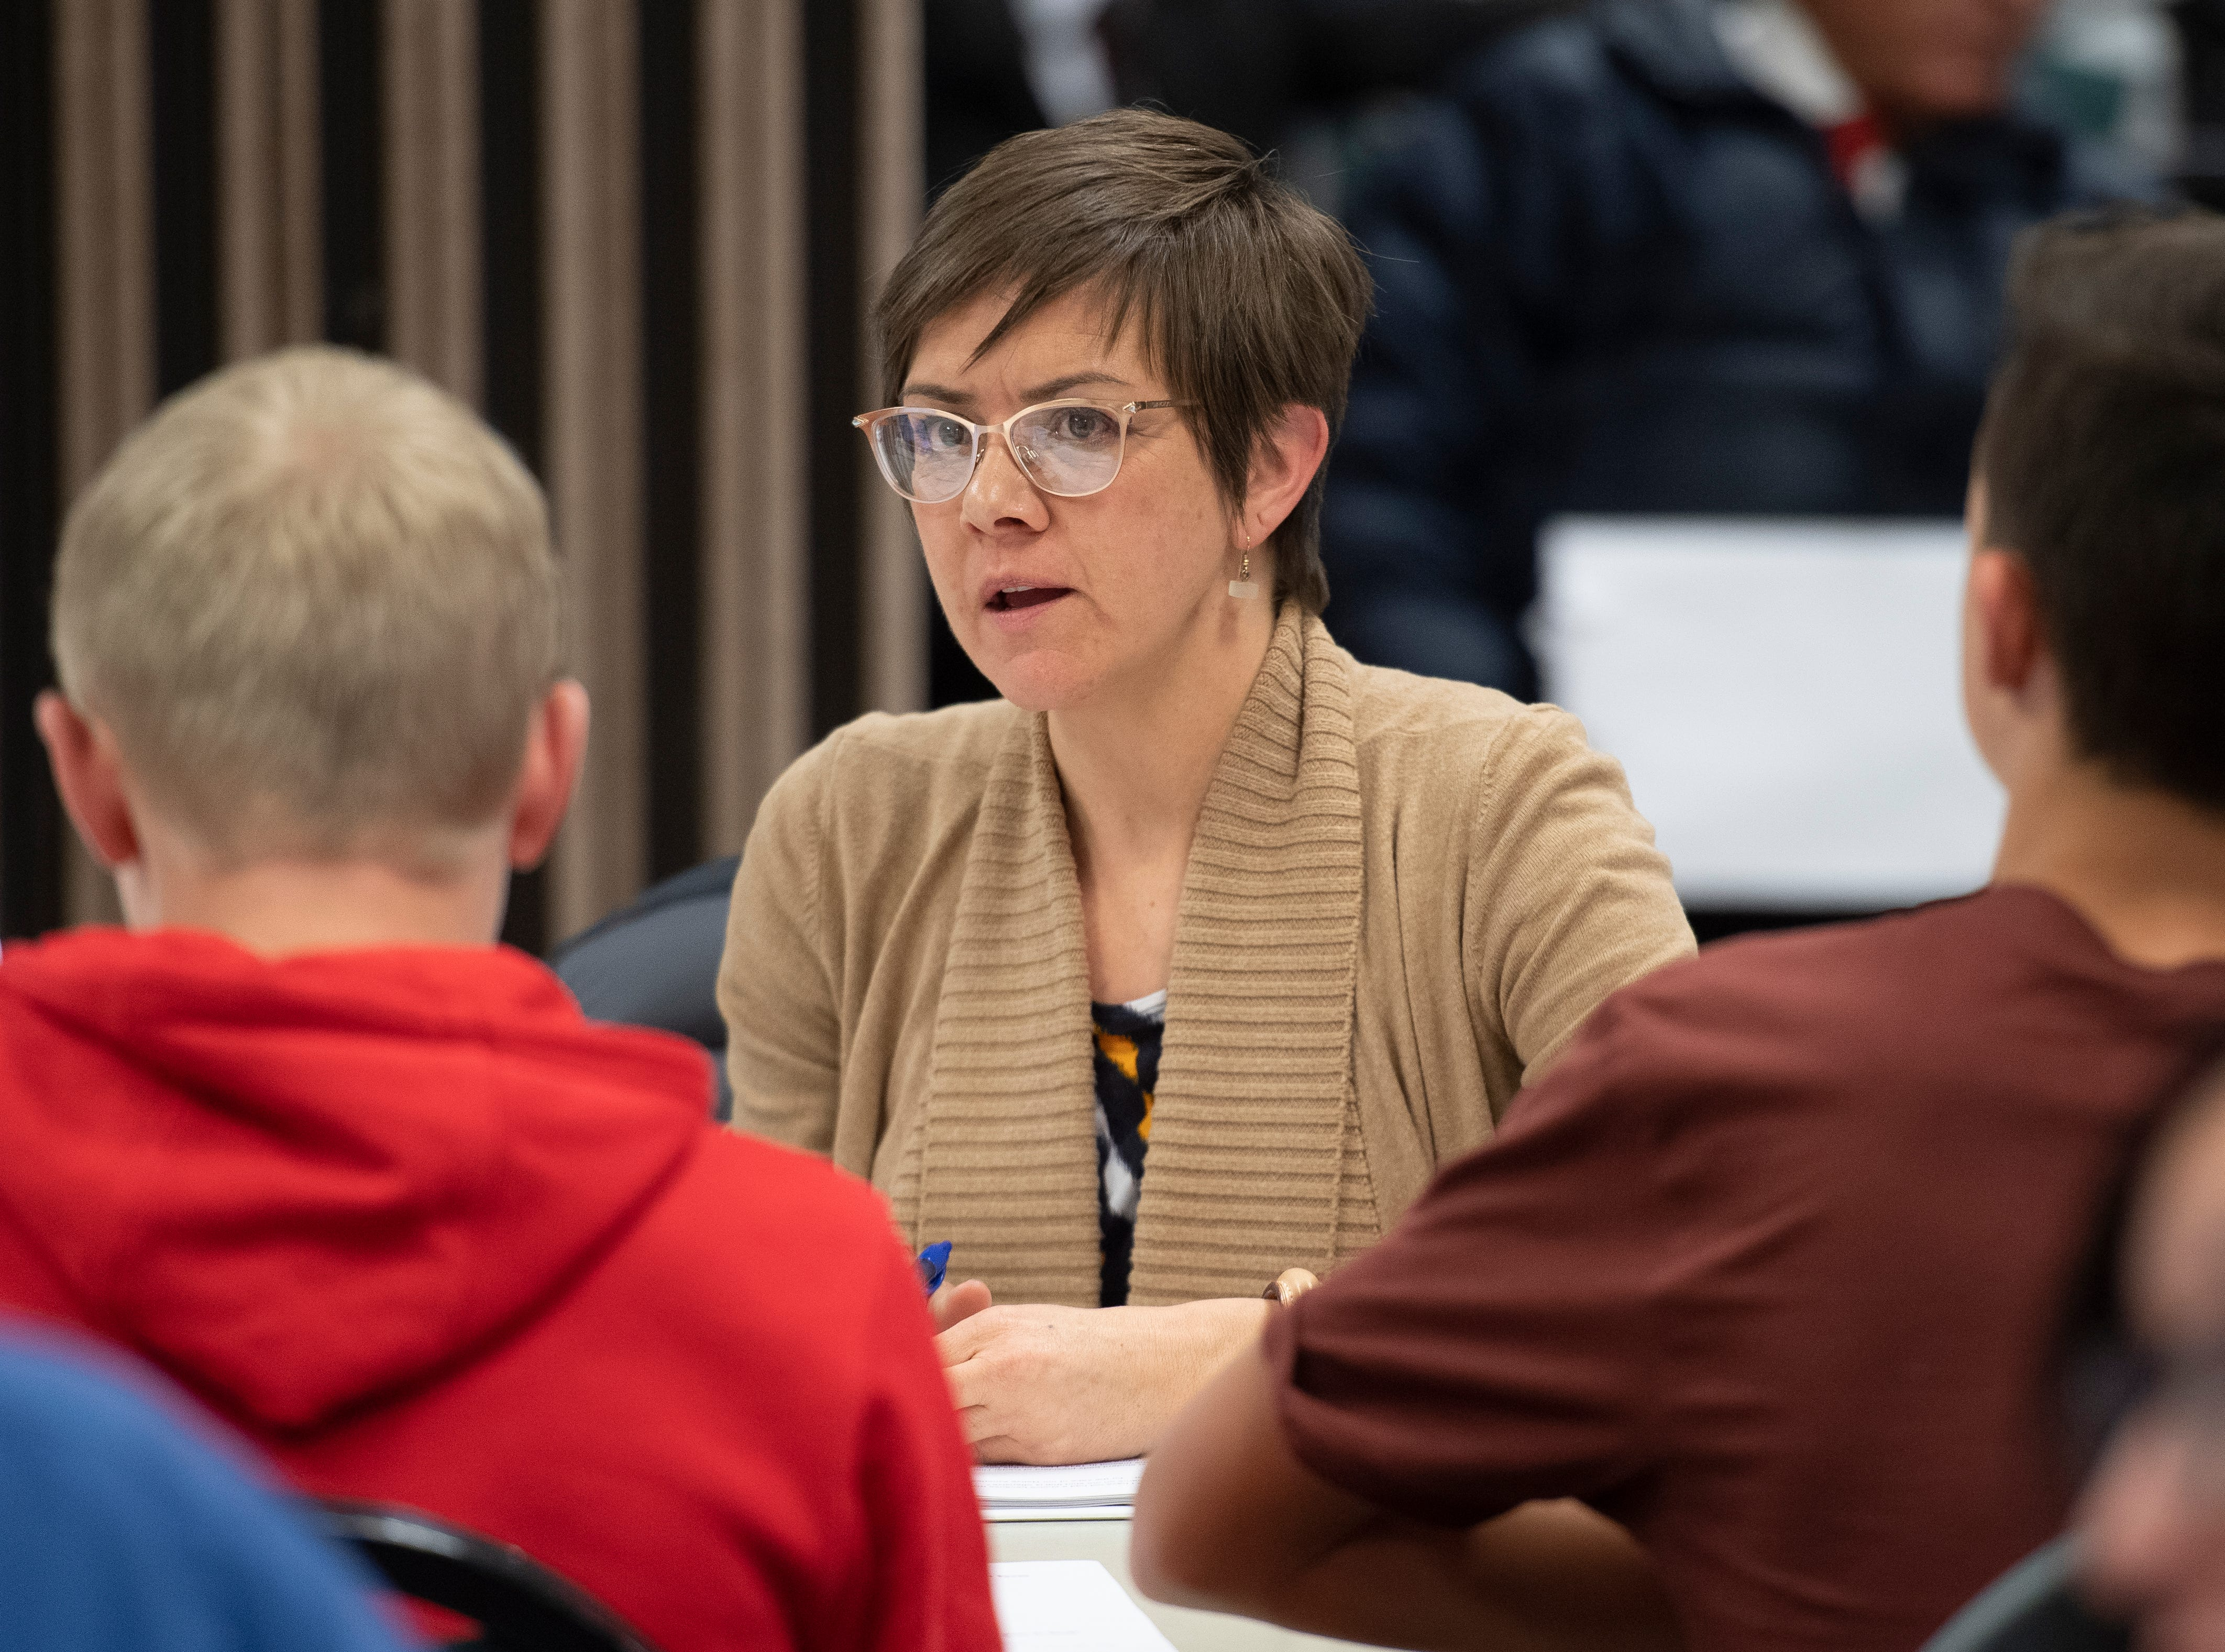 """An Iron County School Board commission discusses changing the """"Redmen"""" name of Cedar High School at the school district building Tuesday, January 15, 2019. The 24-member panel voted 17-7 in favor of changing the name."""